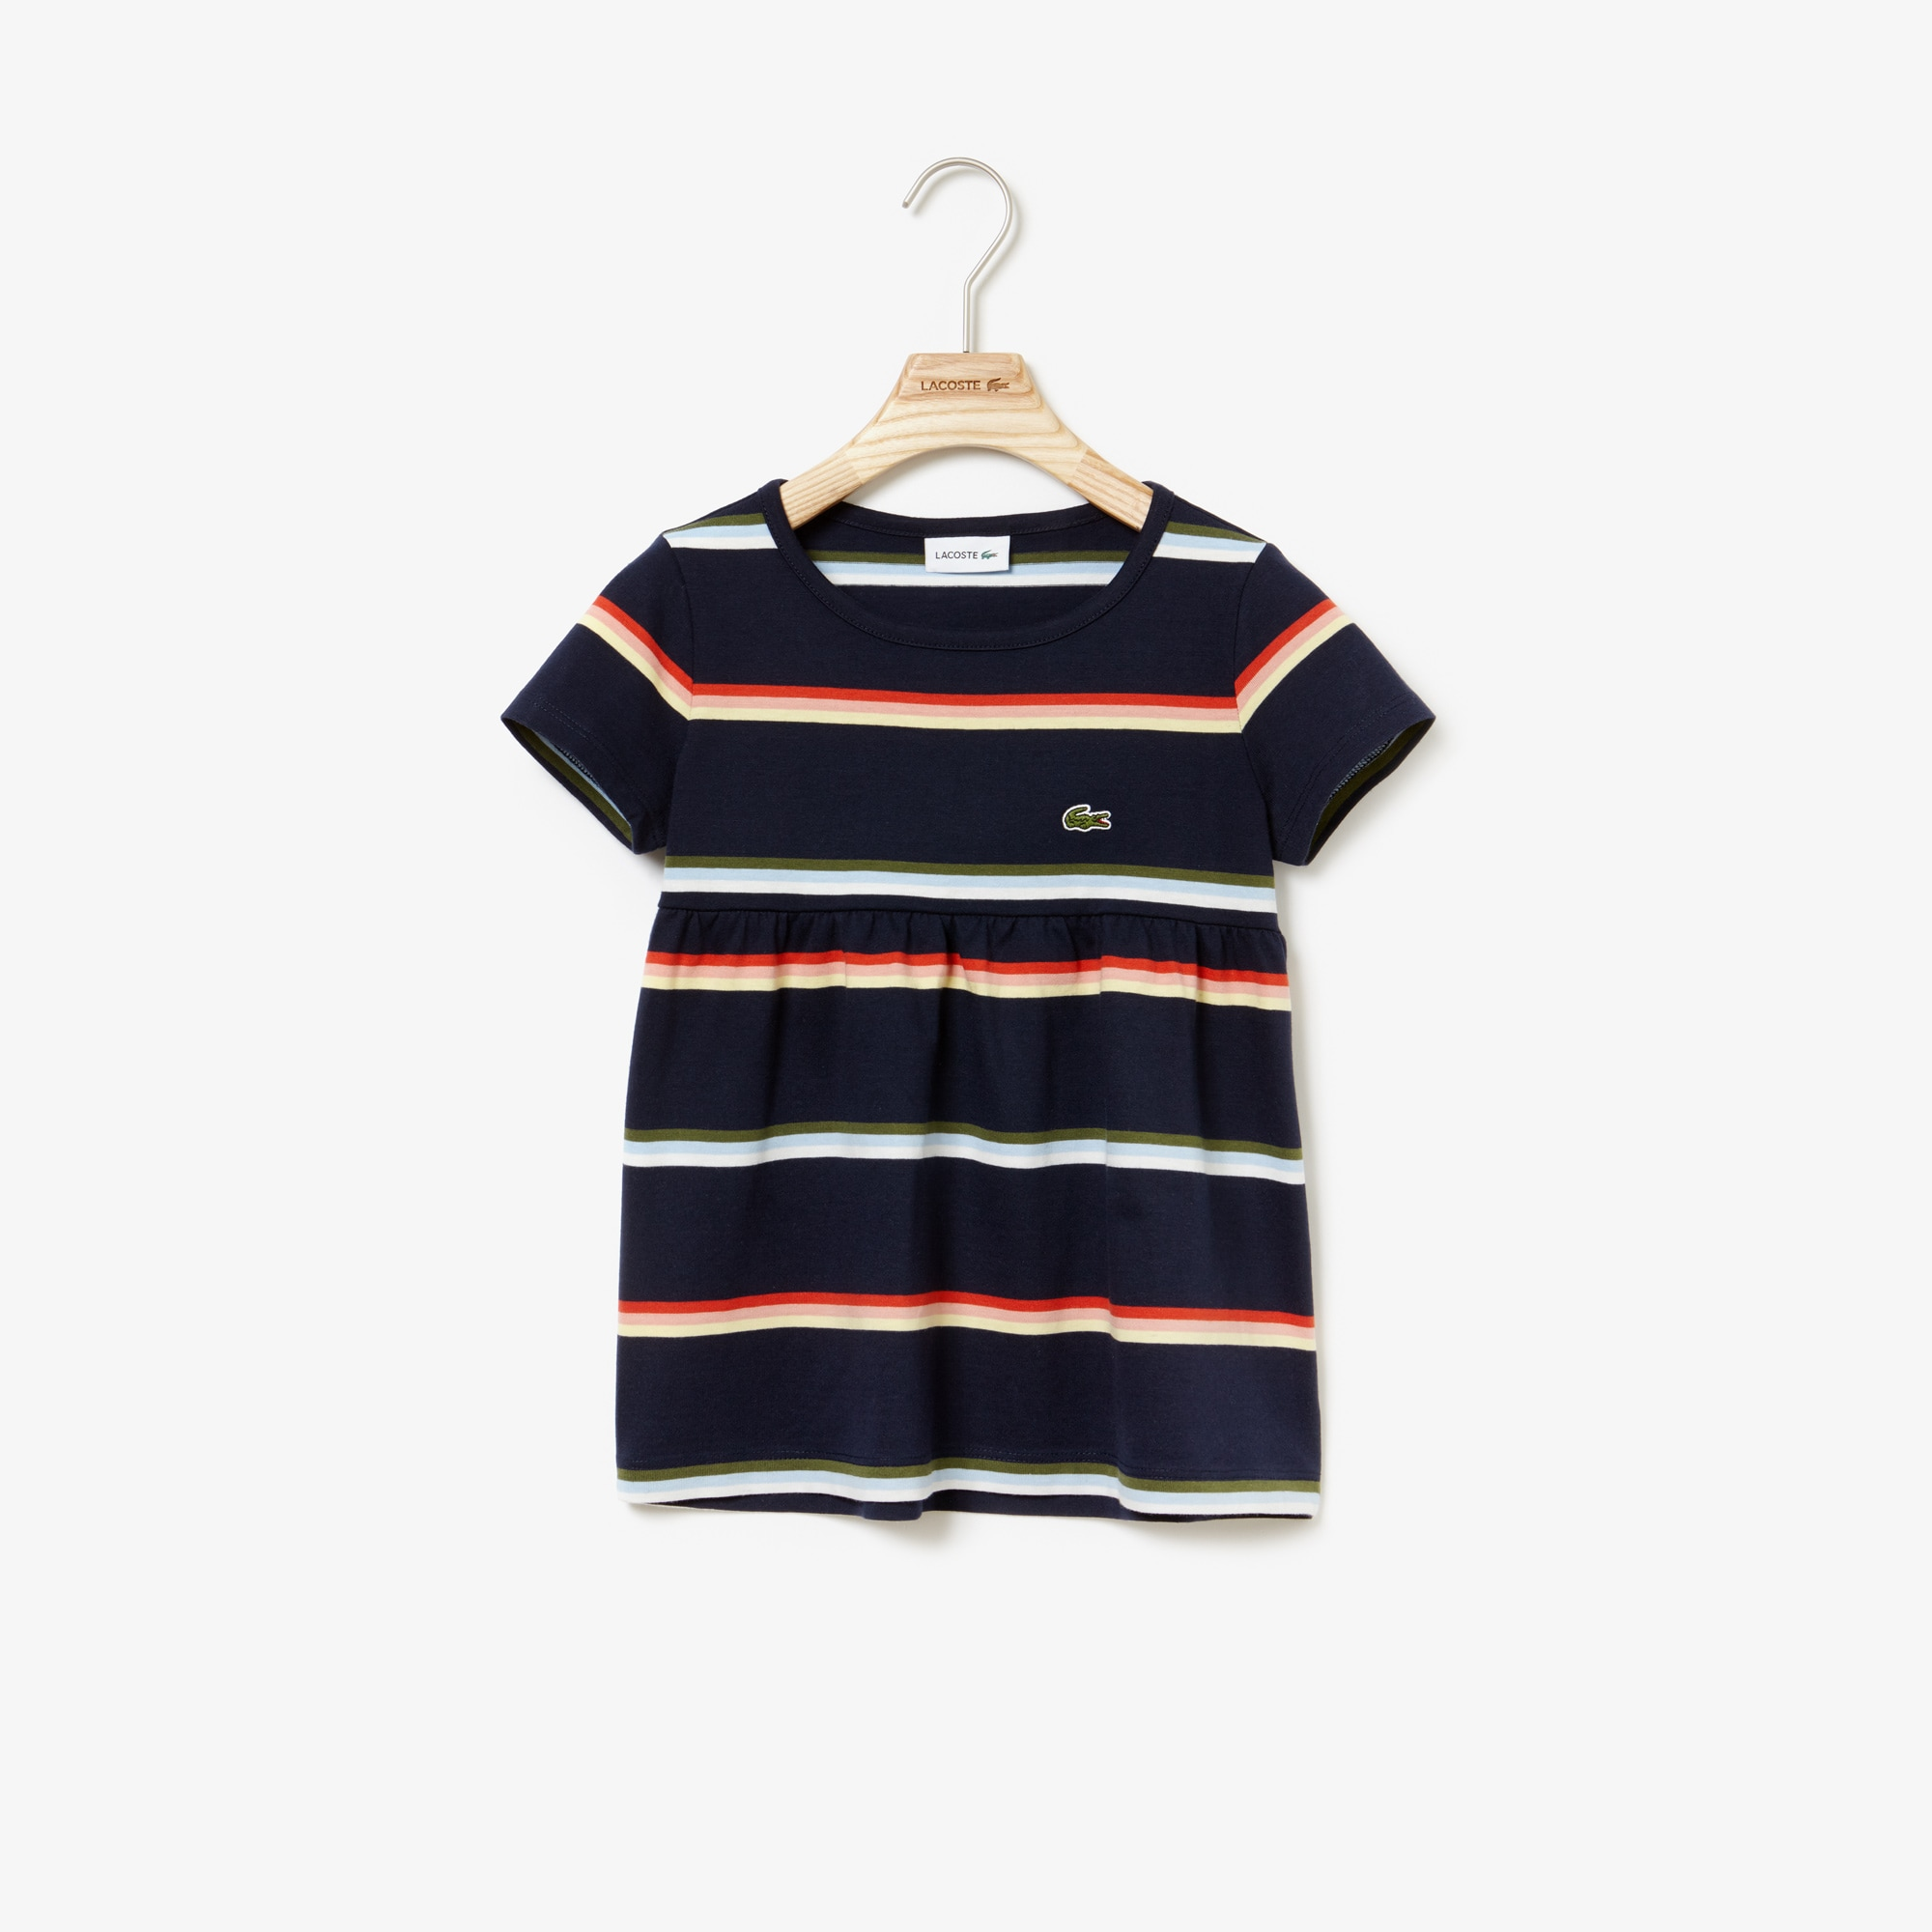 cef8ebcd37 Girls' Crew Neck Striped Cotton And Linen Jersey T-shirt